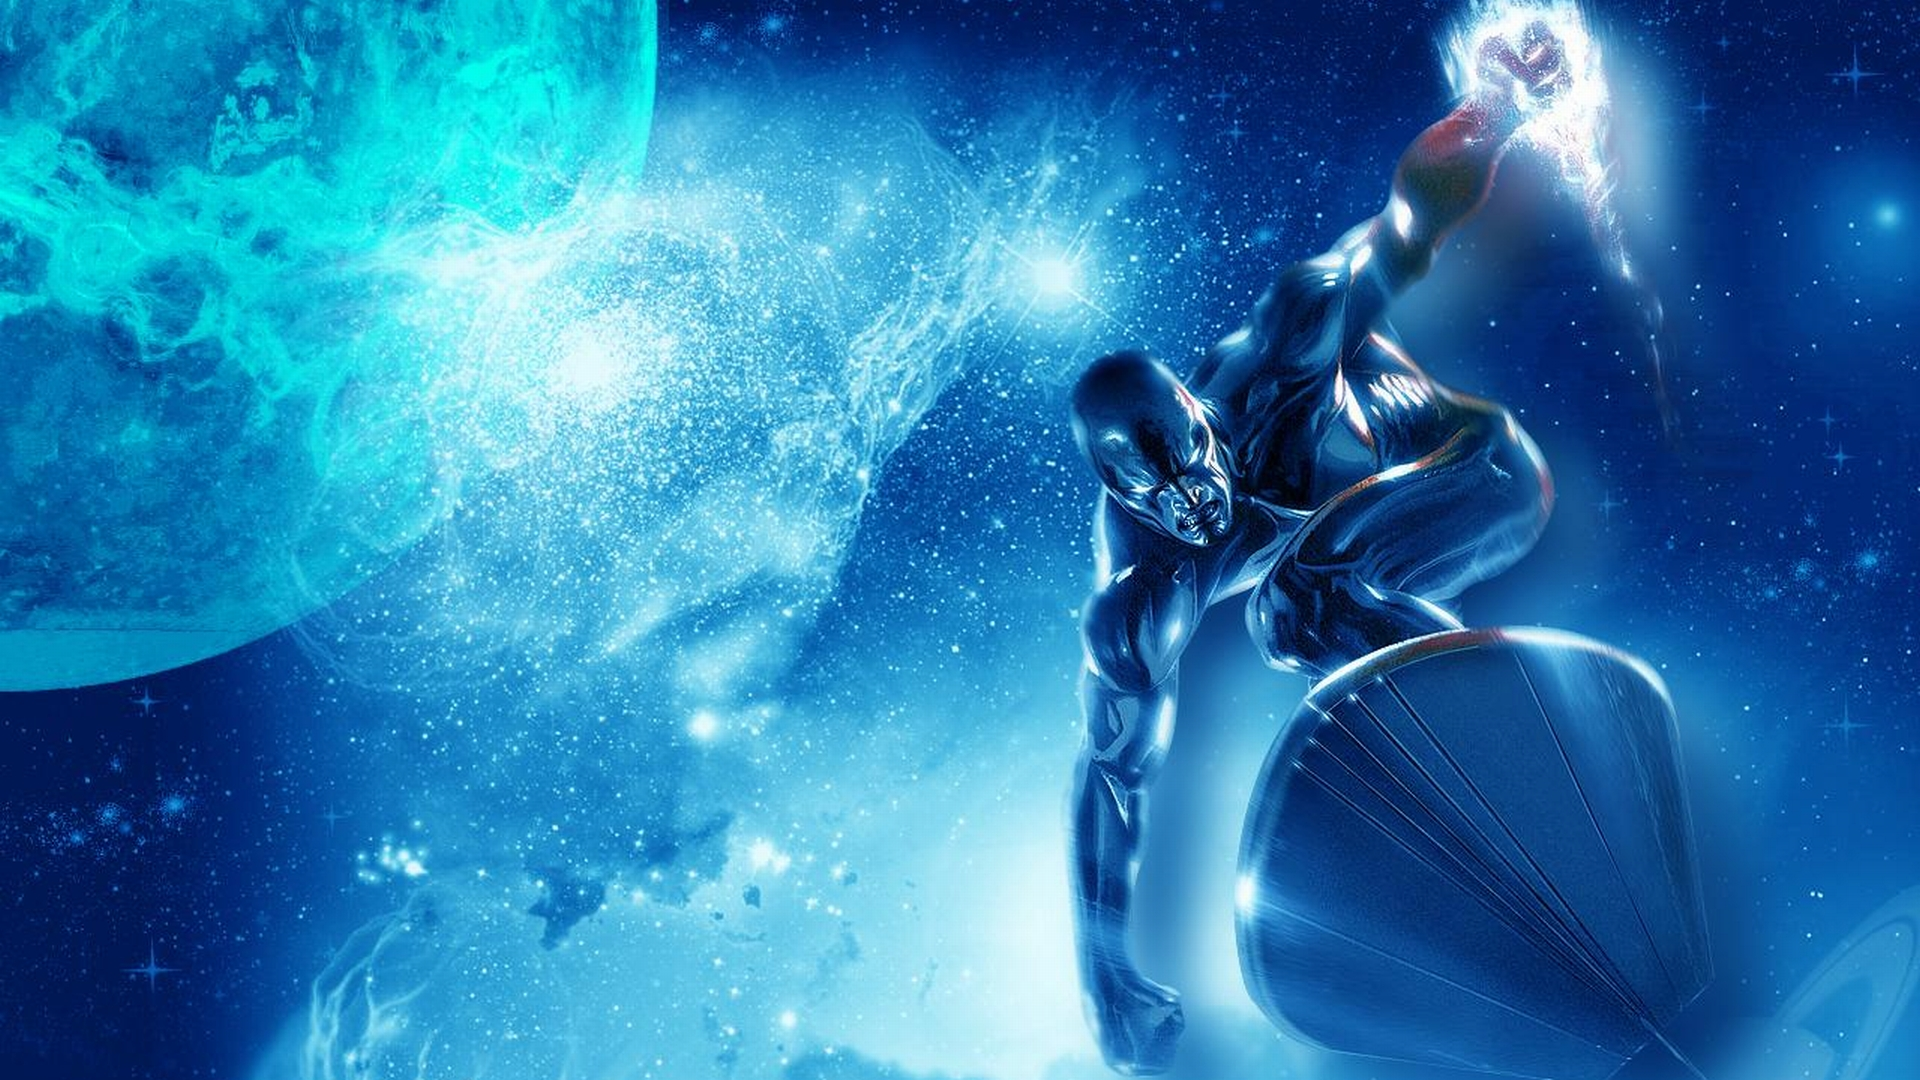 Backgrounds Wallpaper Abyss: 55 Silver Surfer HD Wallpapers